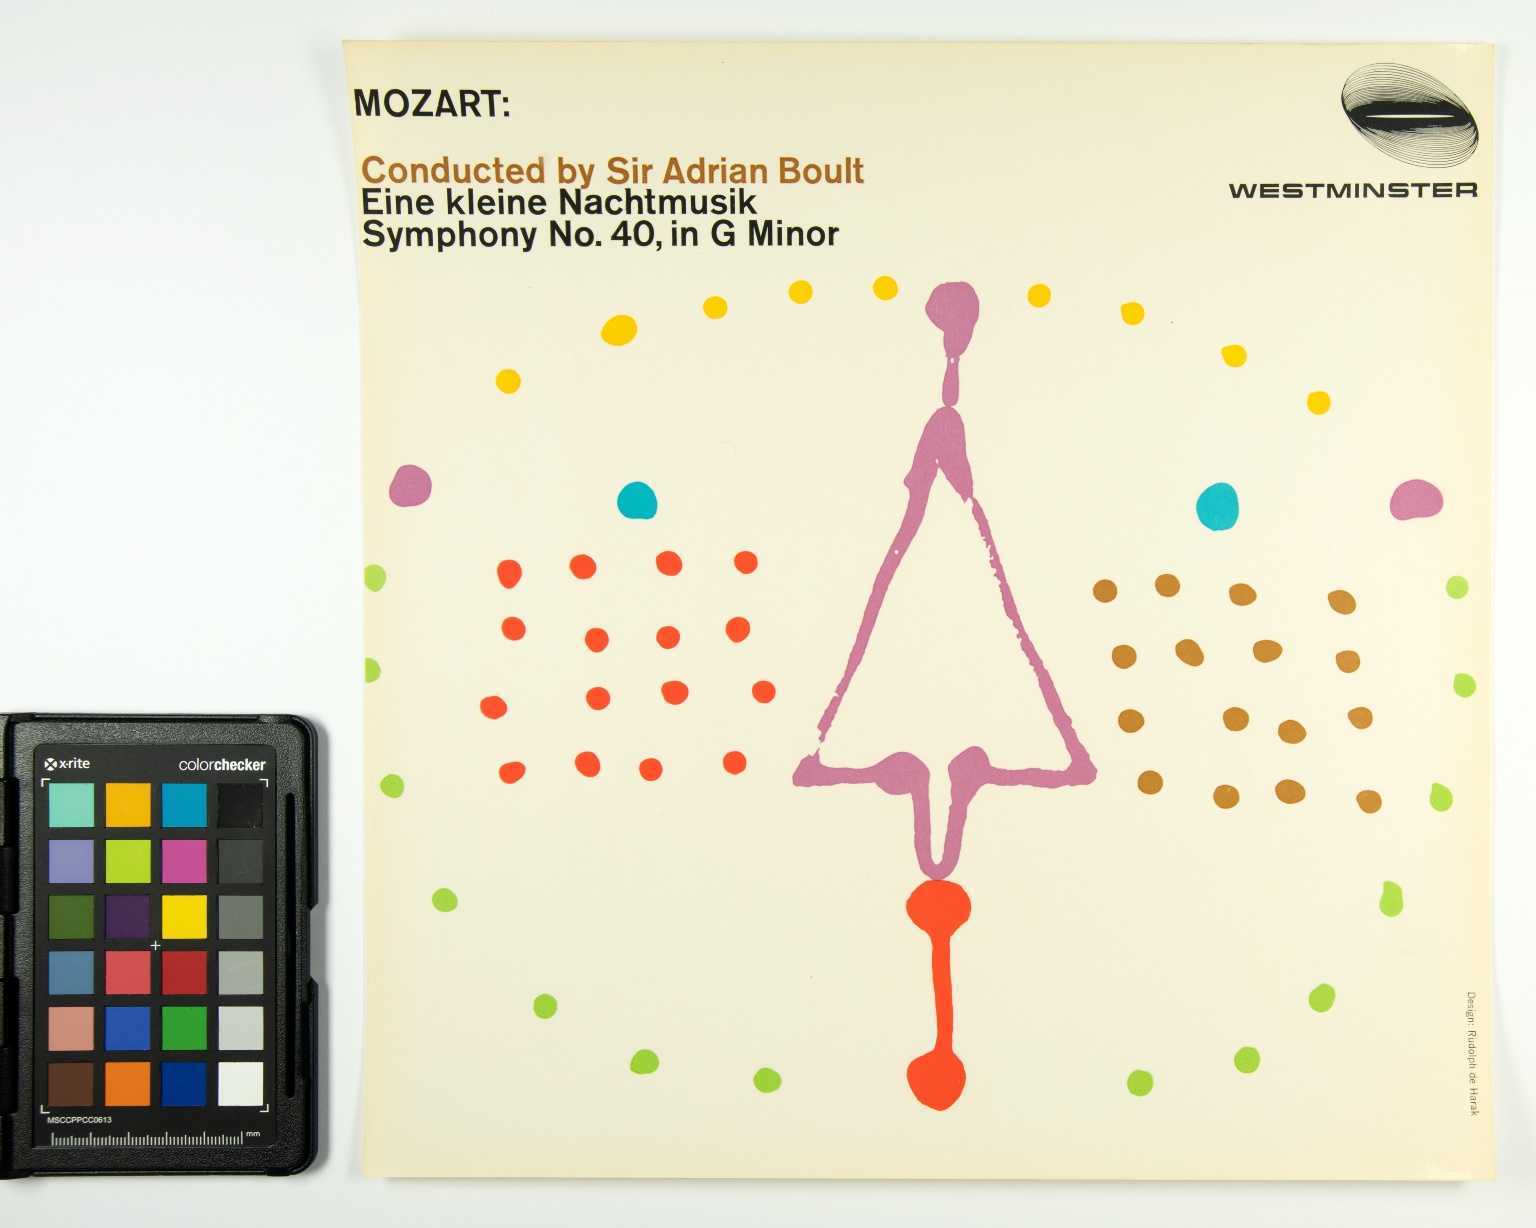 Mozart: Conducted by Sir Adrian Boult